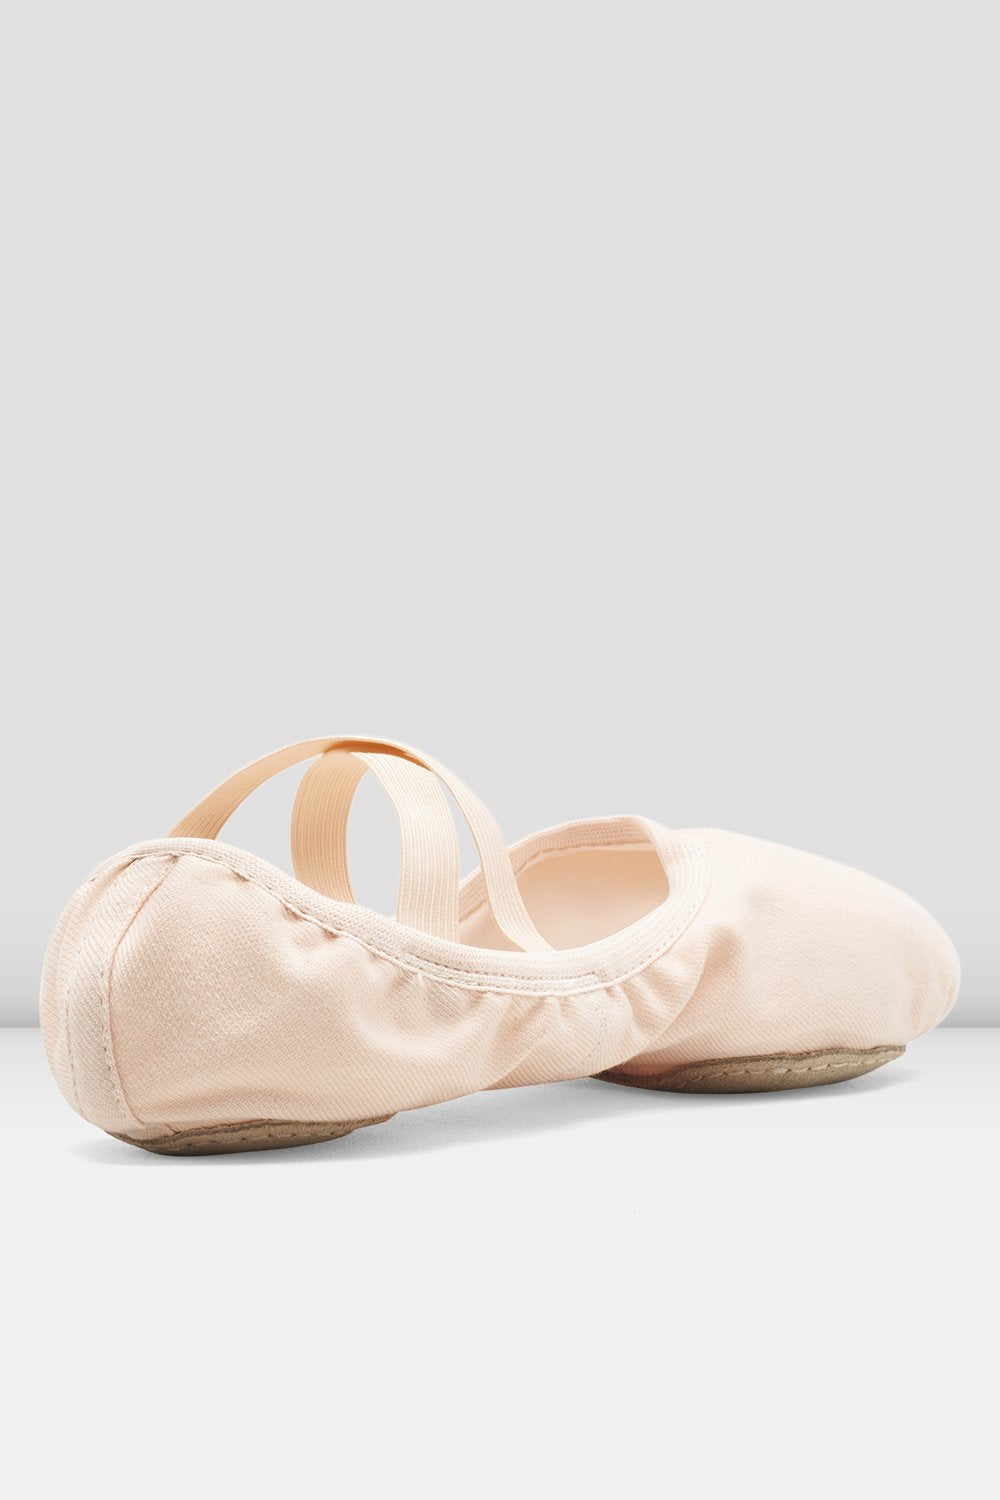 Theatrical pink canvas Bloch Ladies Performa Stretch Canvas Ballet Shoes single shoe side view focus on heel of shoe